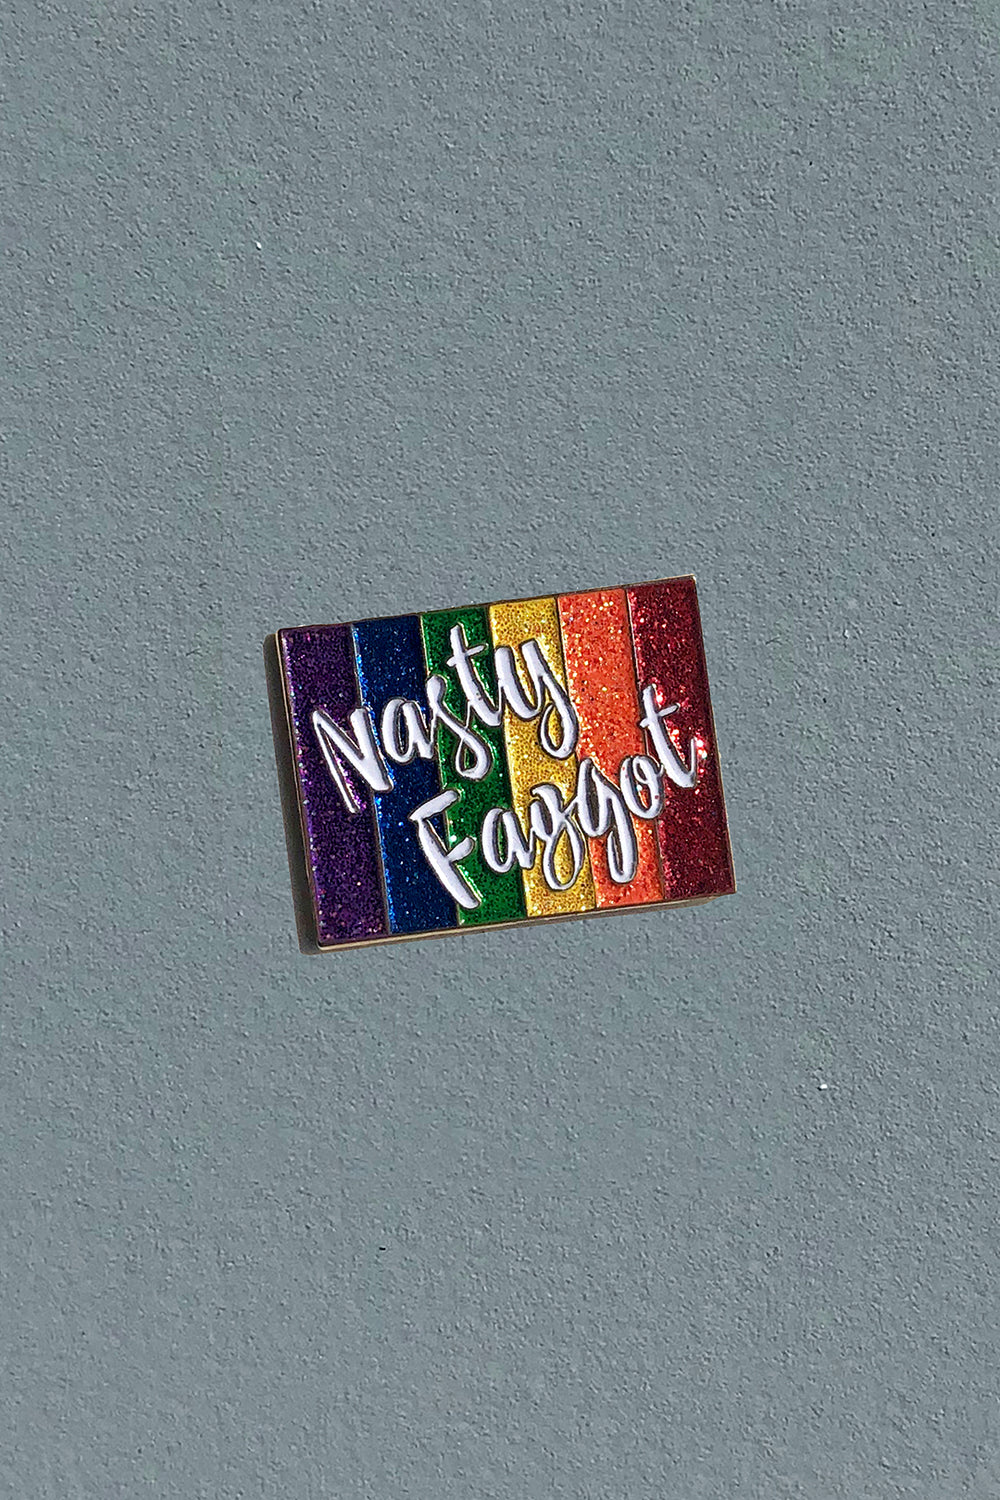 NASTY FAGGOT PIN